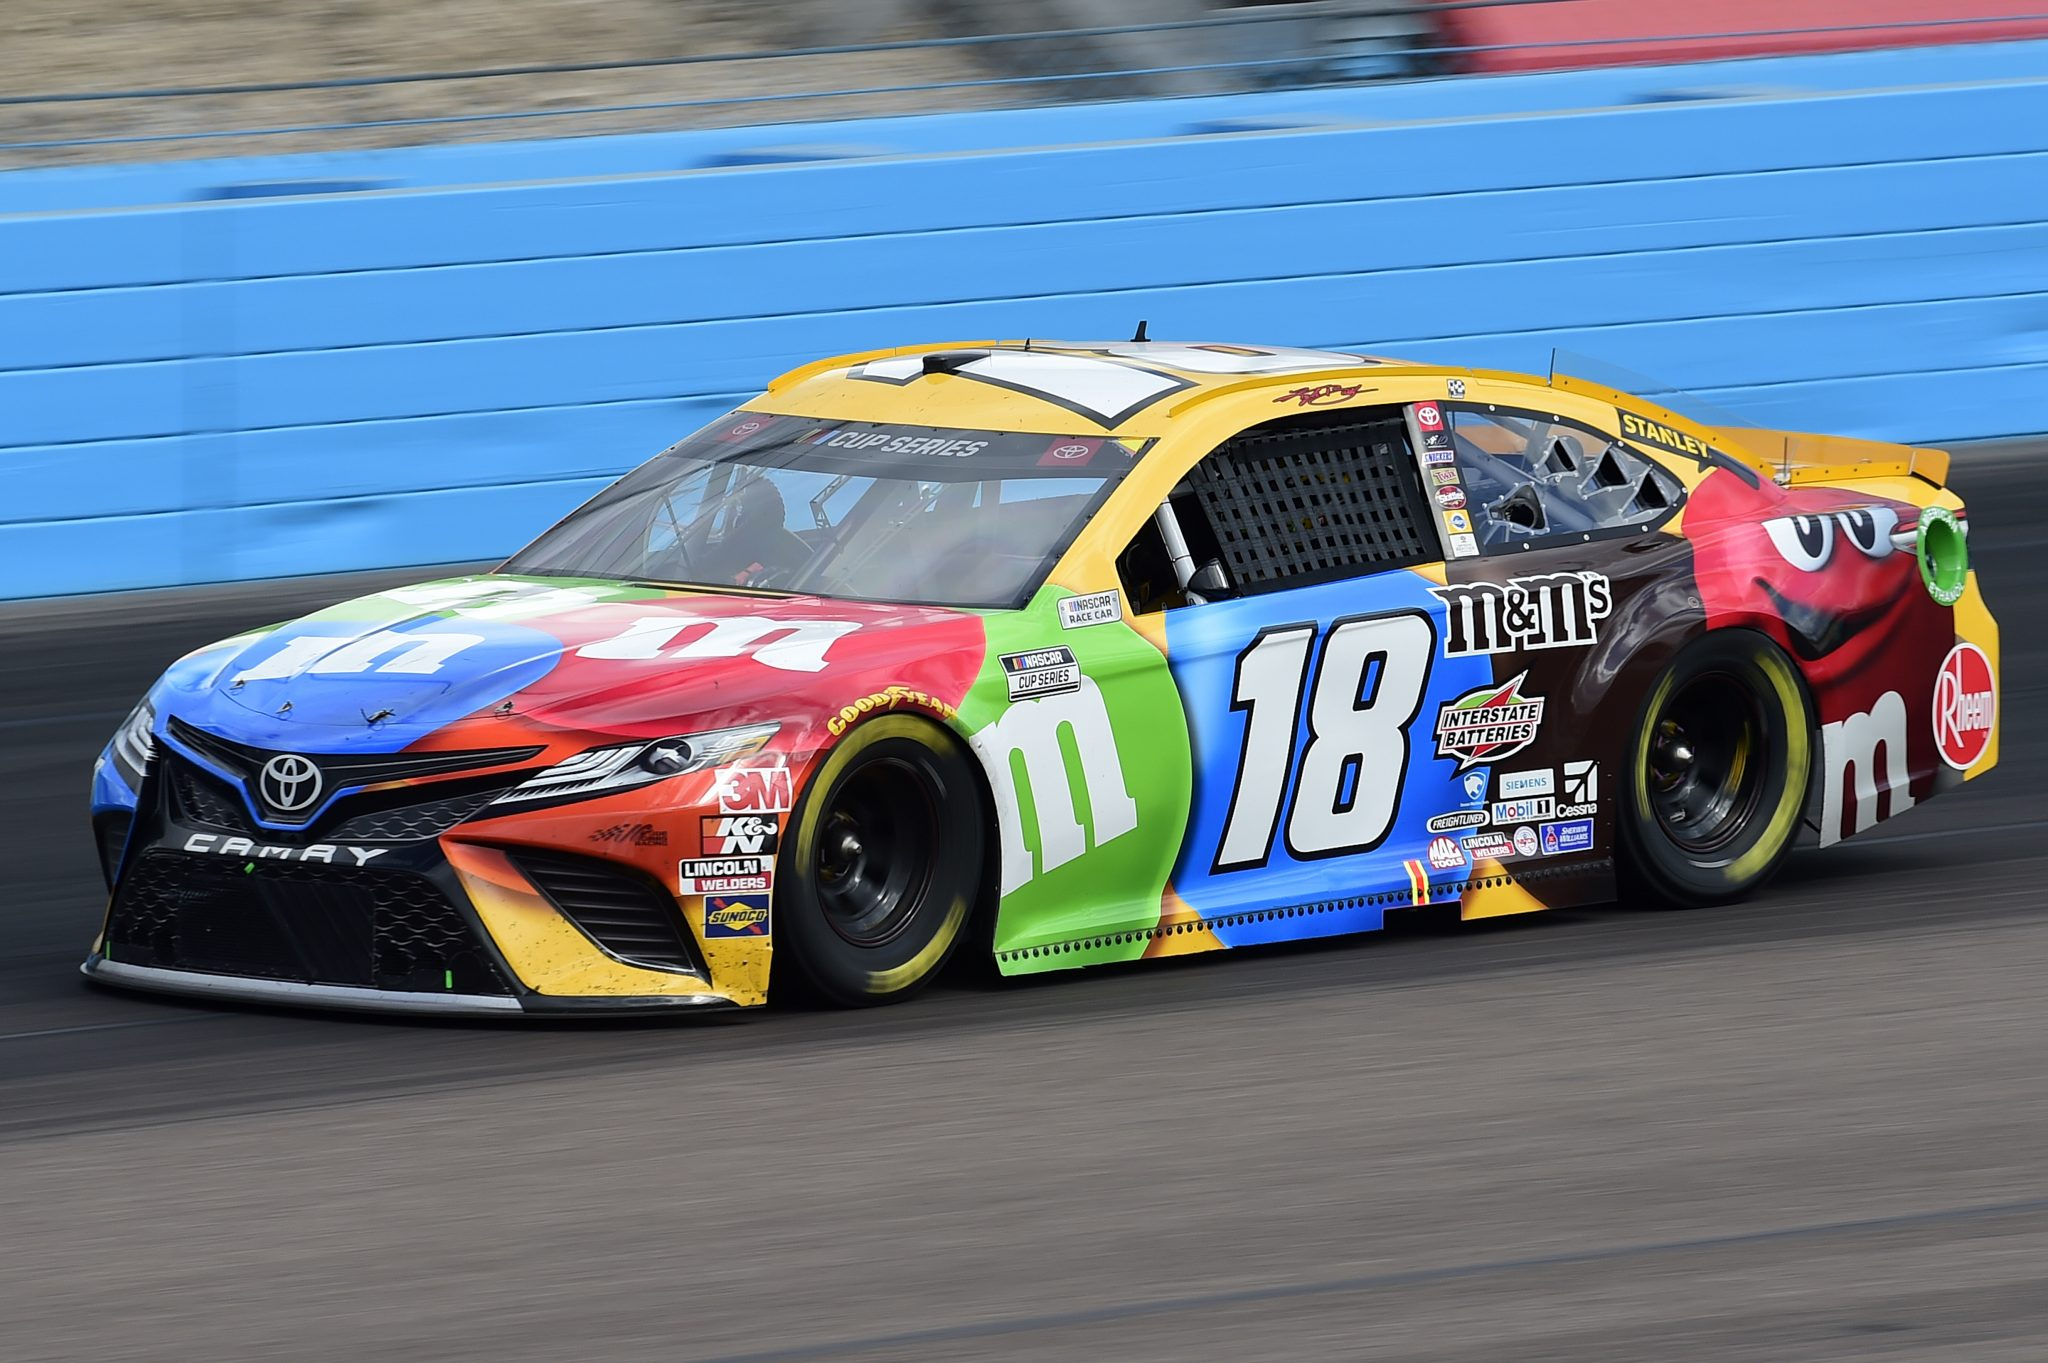 AVONDALE, ARIZONA - NOVEMBER 08: Kyle Busch, driver of the #18 M&M's Toyota, drives during the NASCAR Cup Series Season Finale 500 at Phoenix Raceway on November 08, 2020 in Avondale, Arizona. (Photo by Jared C. Tilton/Getty Images) | Getty Images